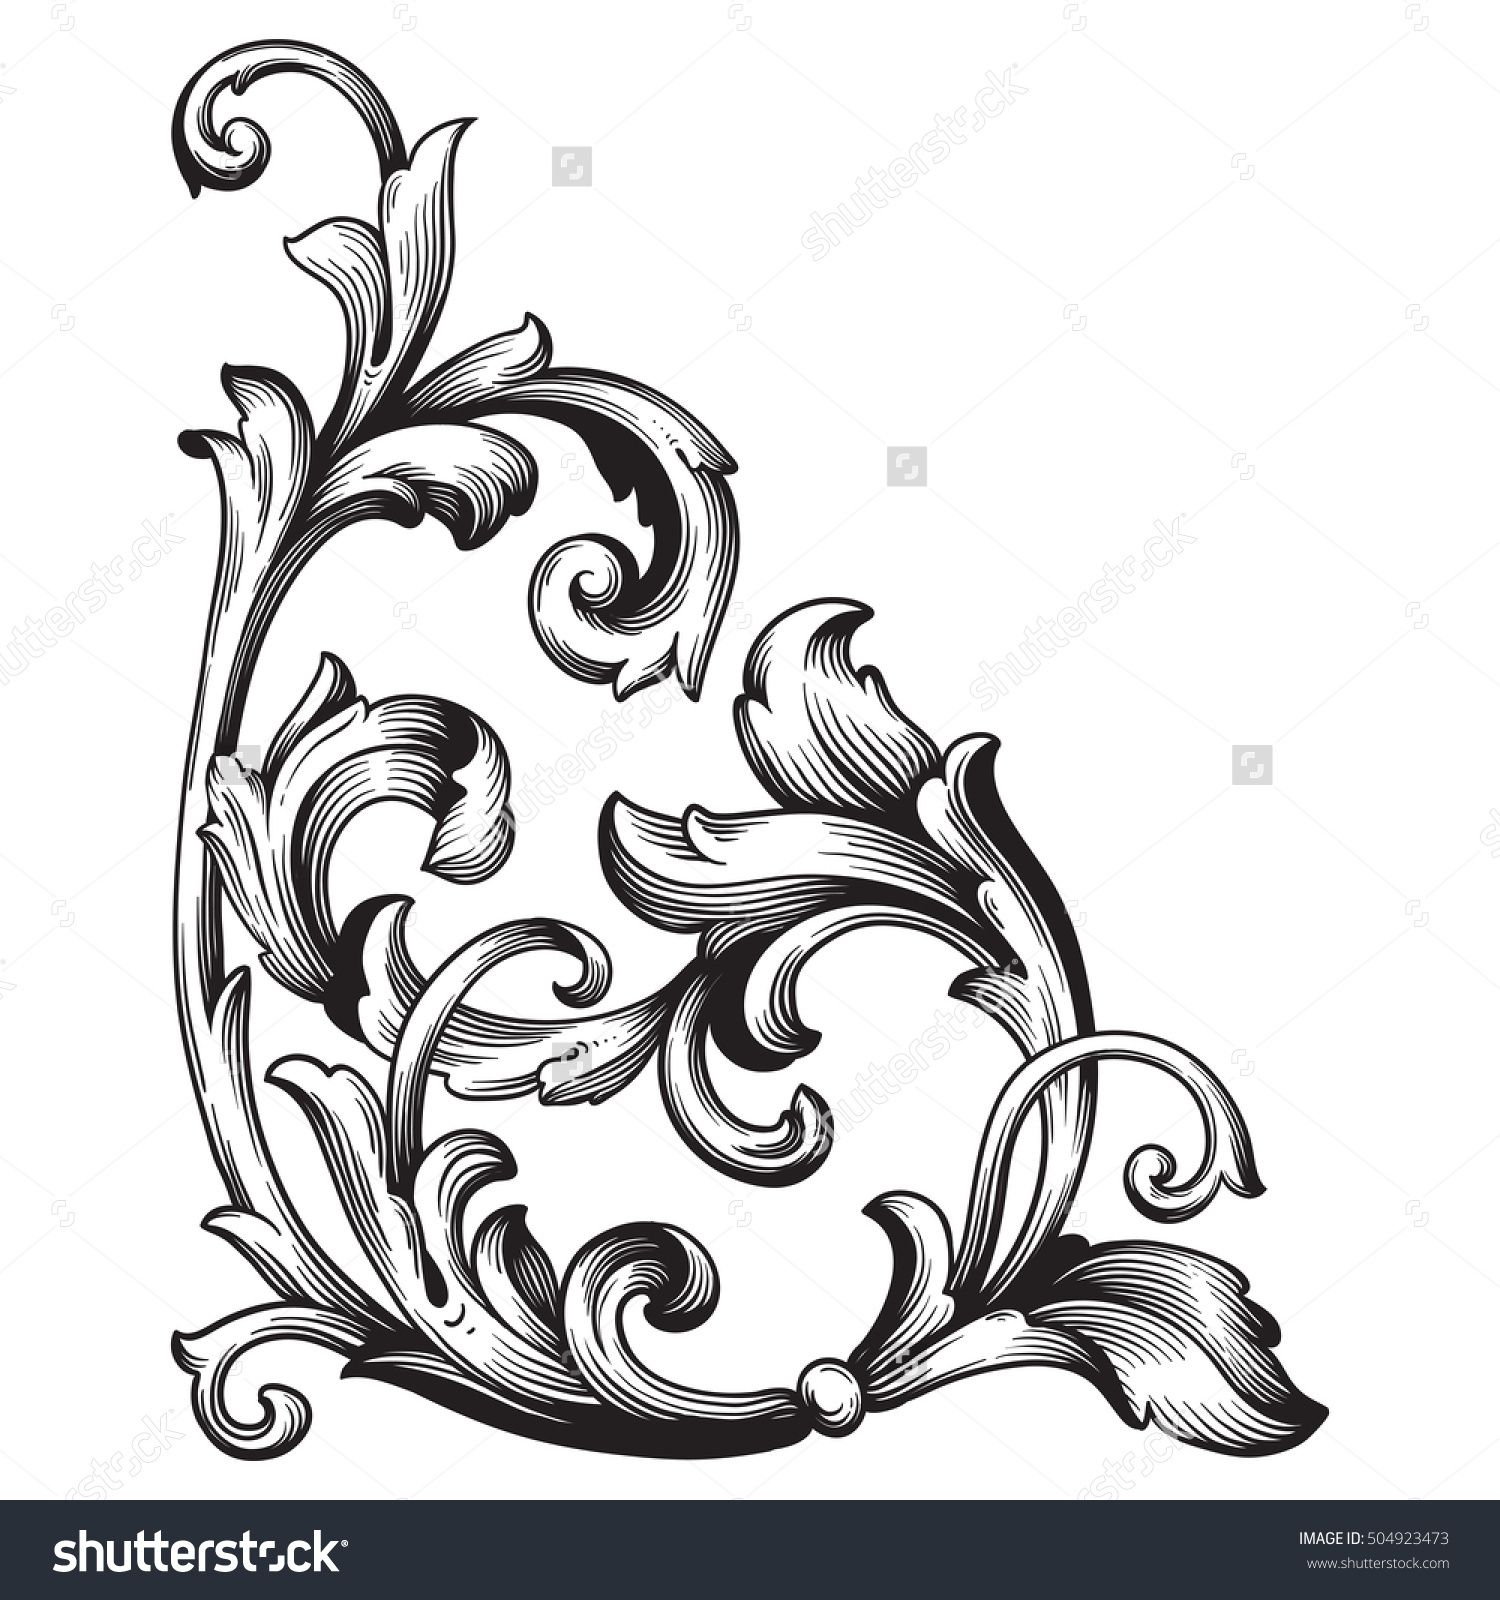 Antique Scroll Design: Vintage Baroque Corner Scroll Ornament Engraving Corner